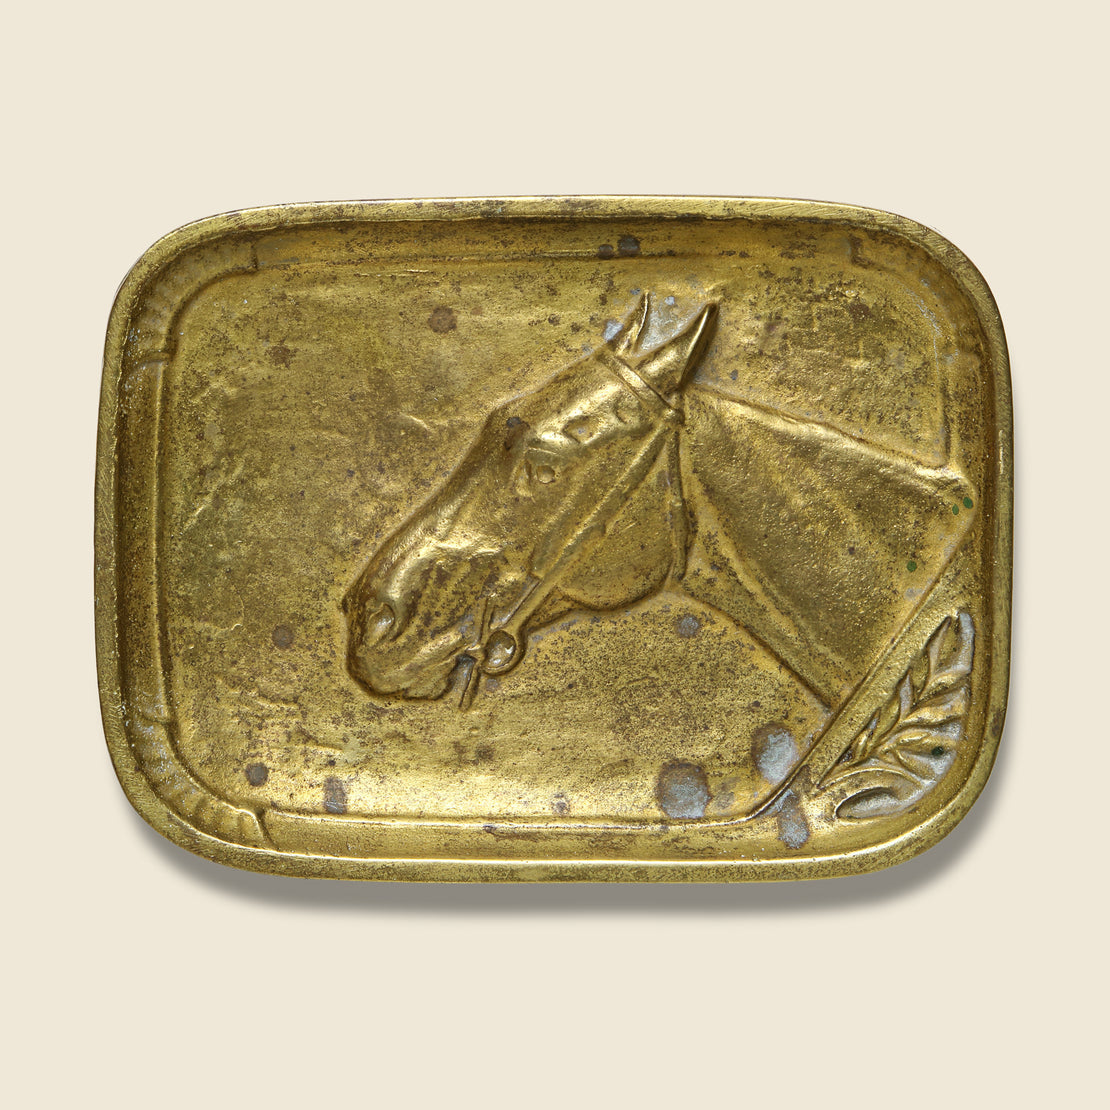 Vintage Brass Tray with Raised Horse Motif